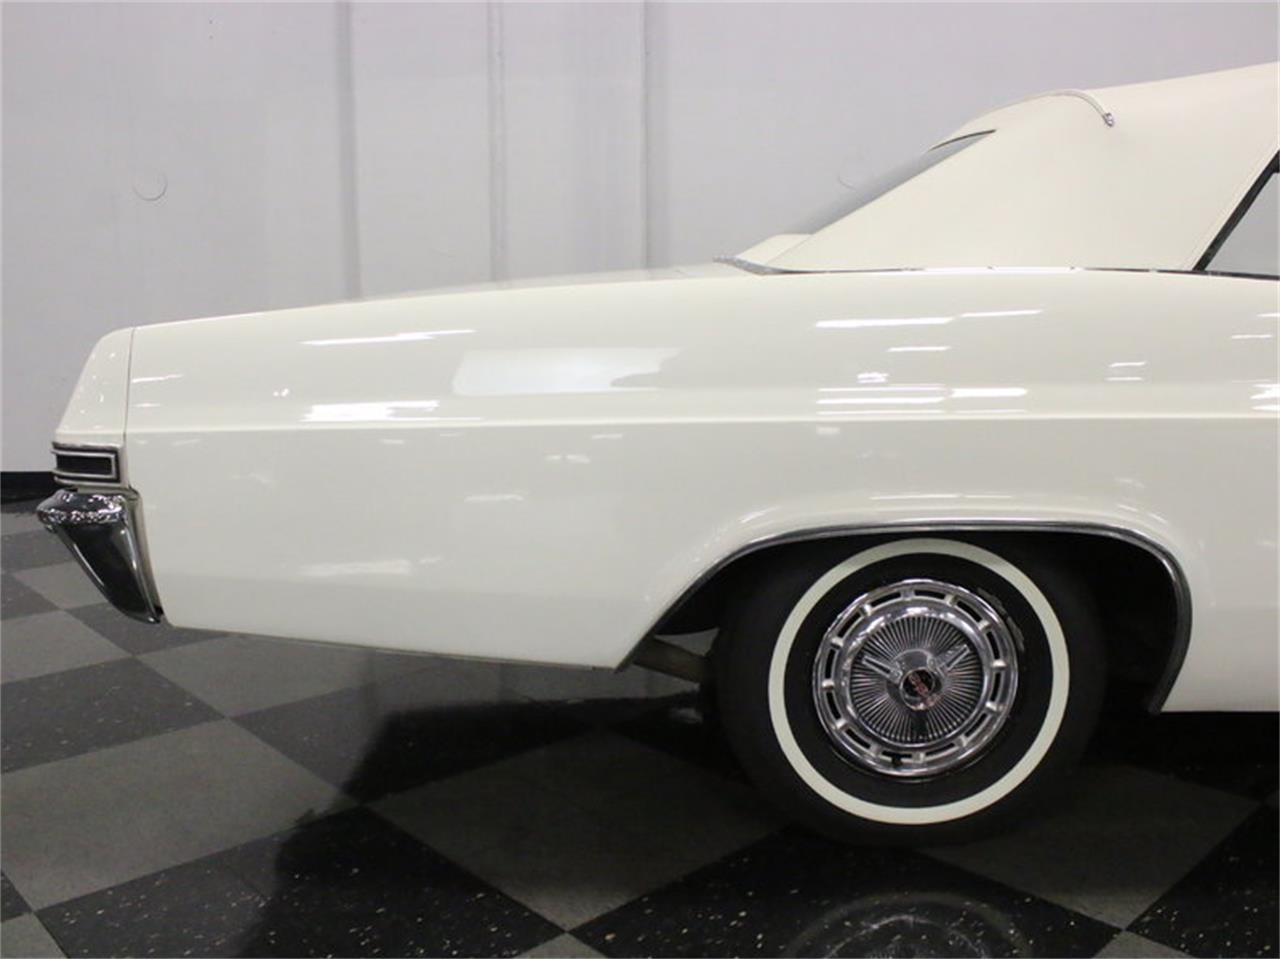 For Sale: 1965 Chevrolet Impala SS in Ft Worth, Texas